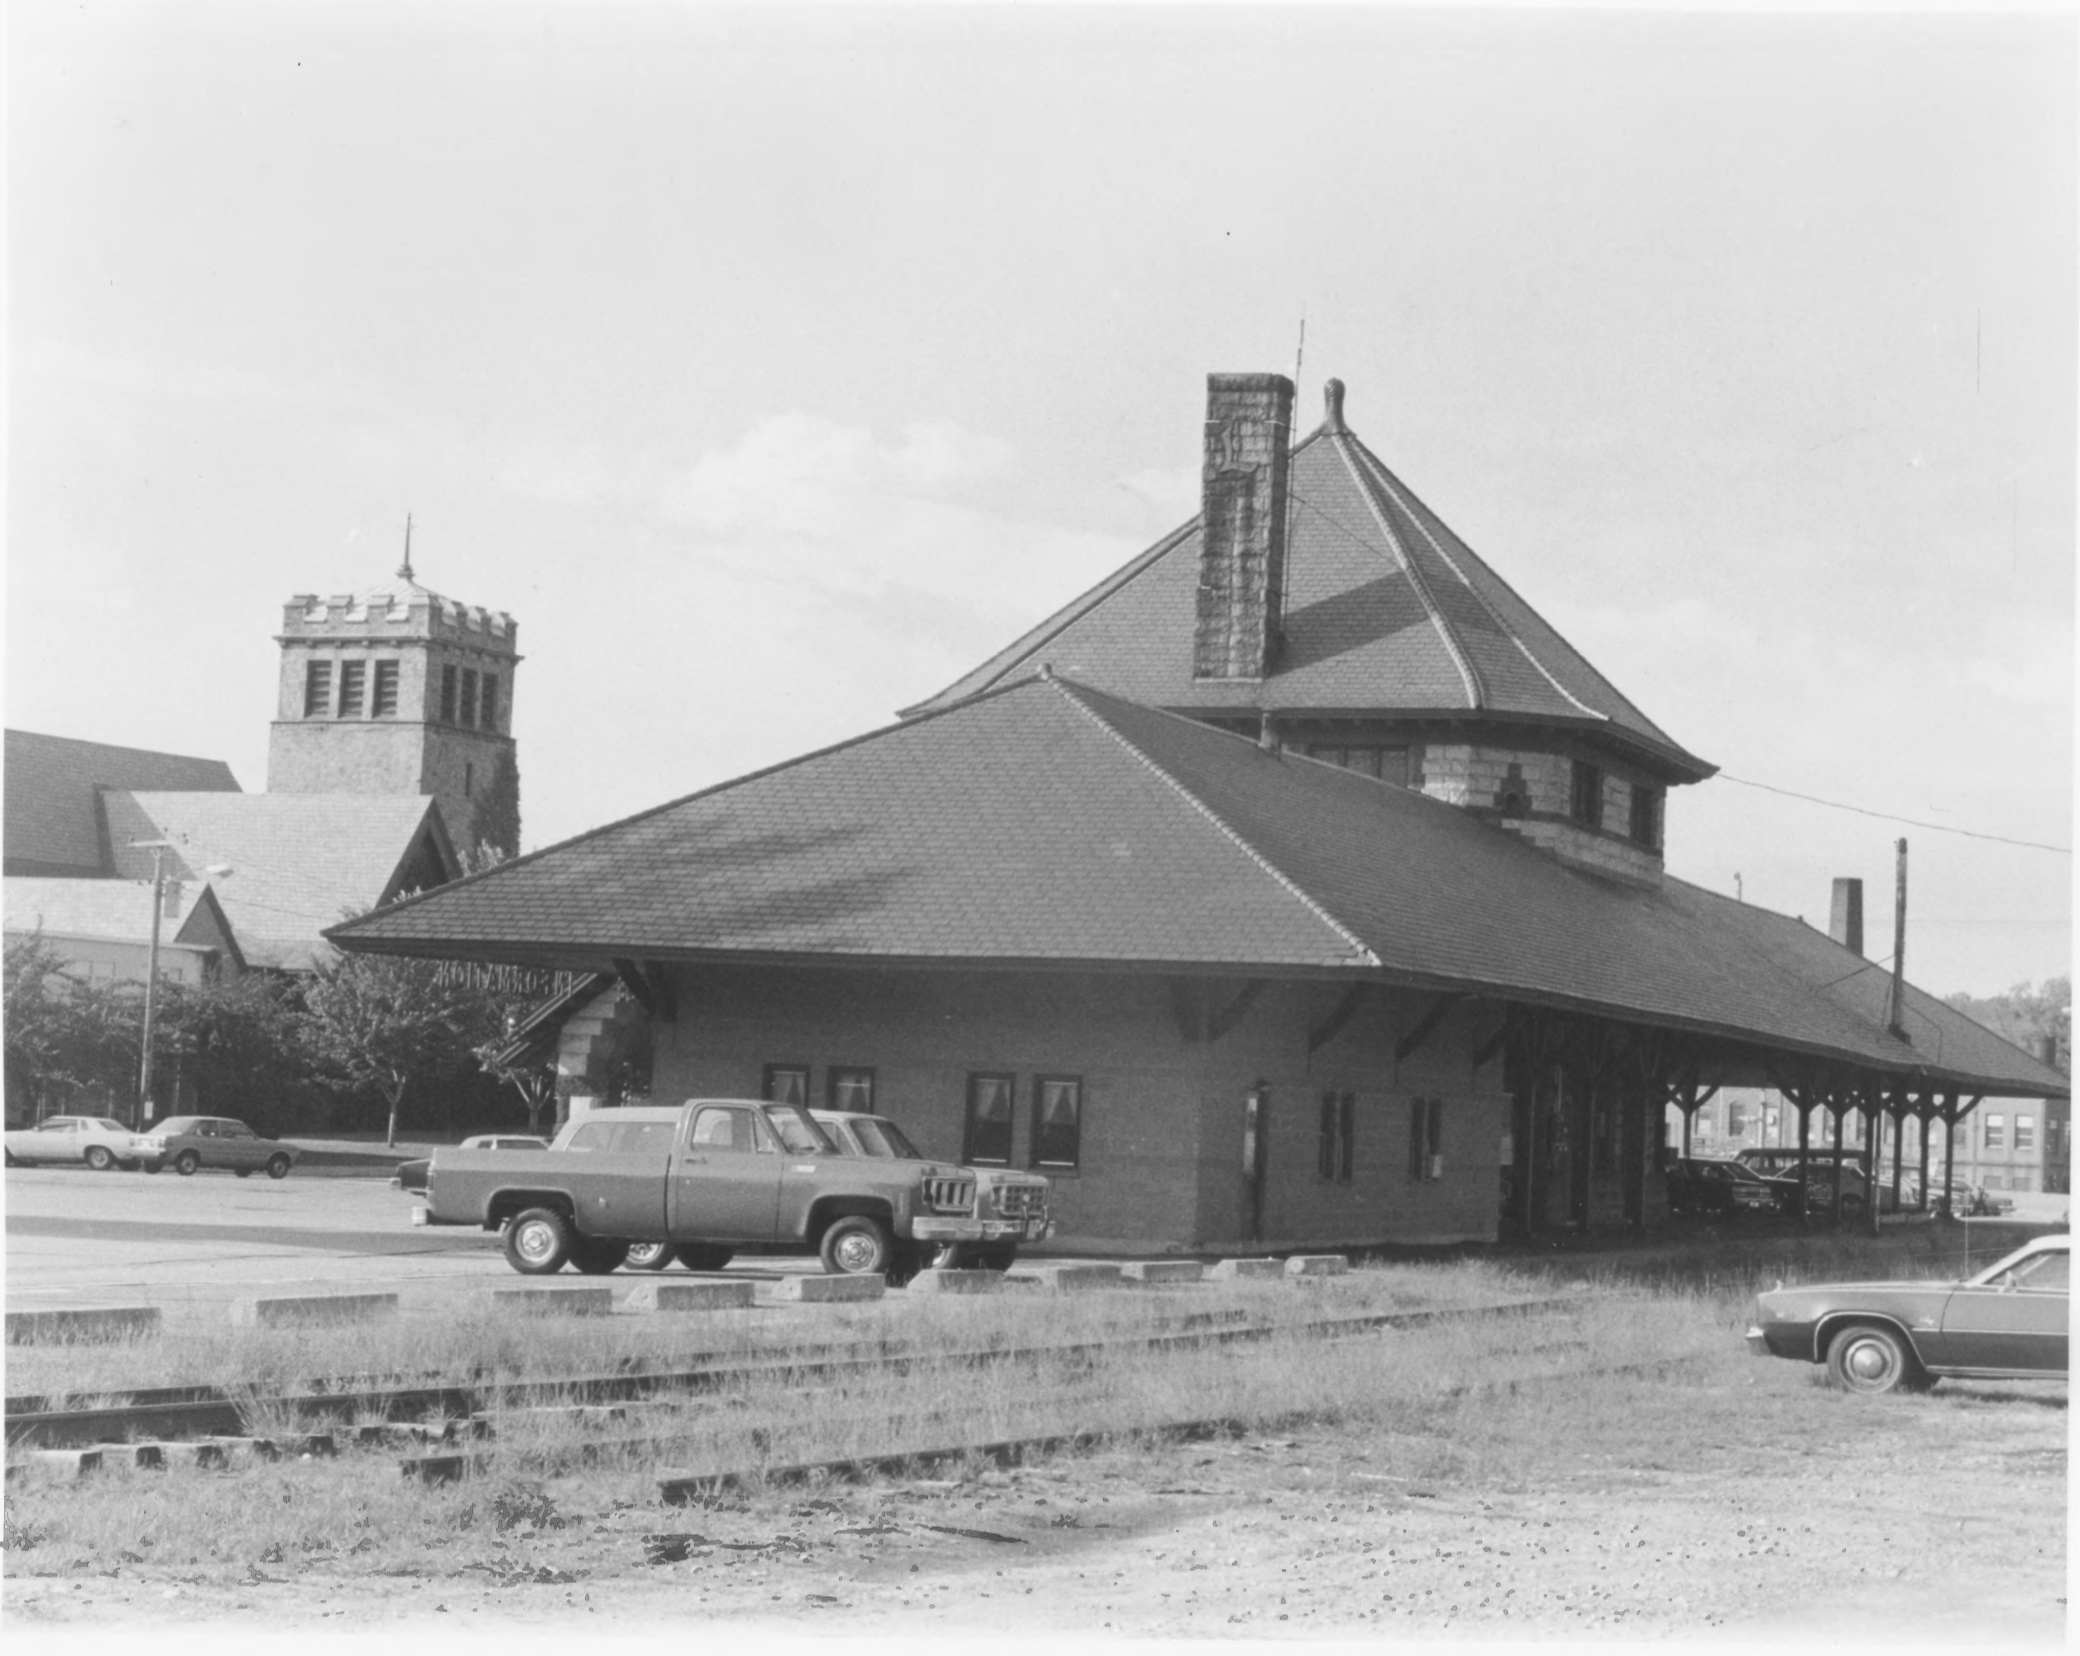 Northern Exterior of Laconia Station by Roger P. Akeley, Jr. In July of 1981 Provided by the NPS NRHP